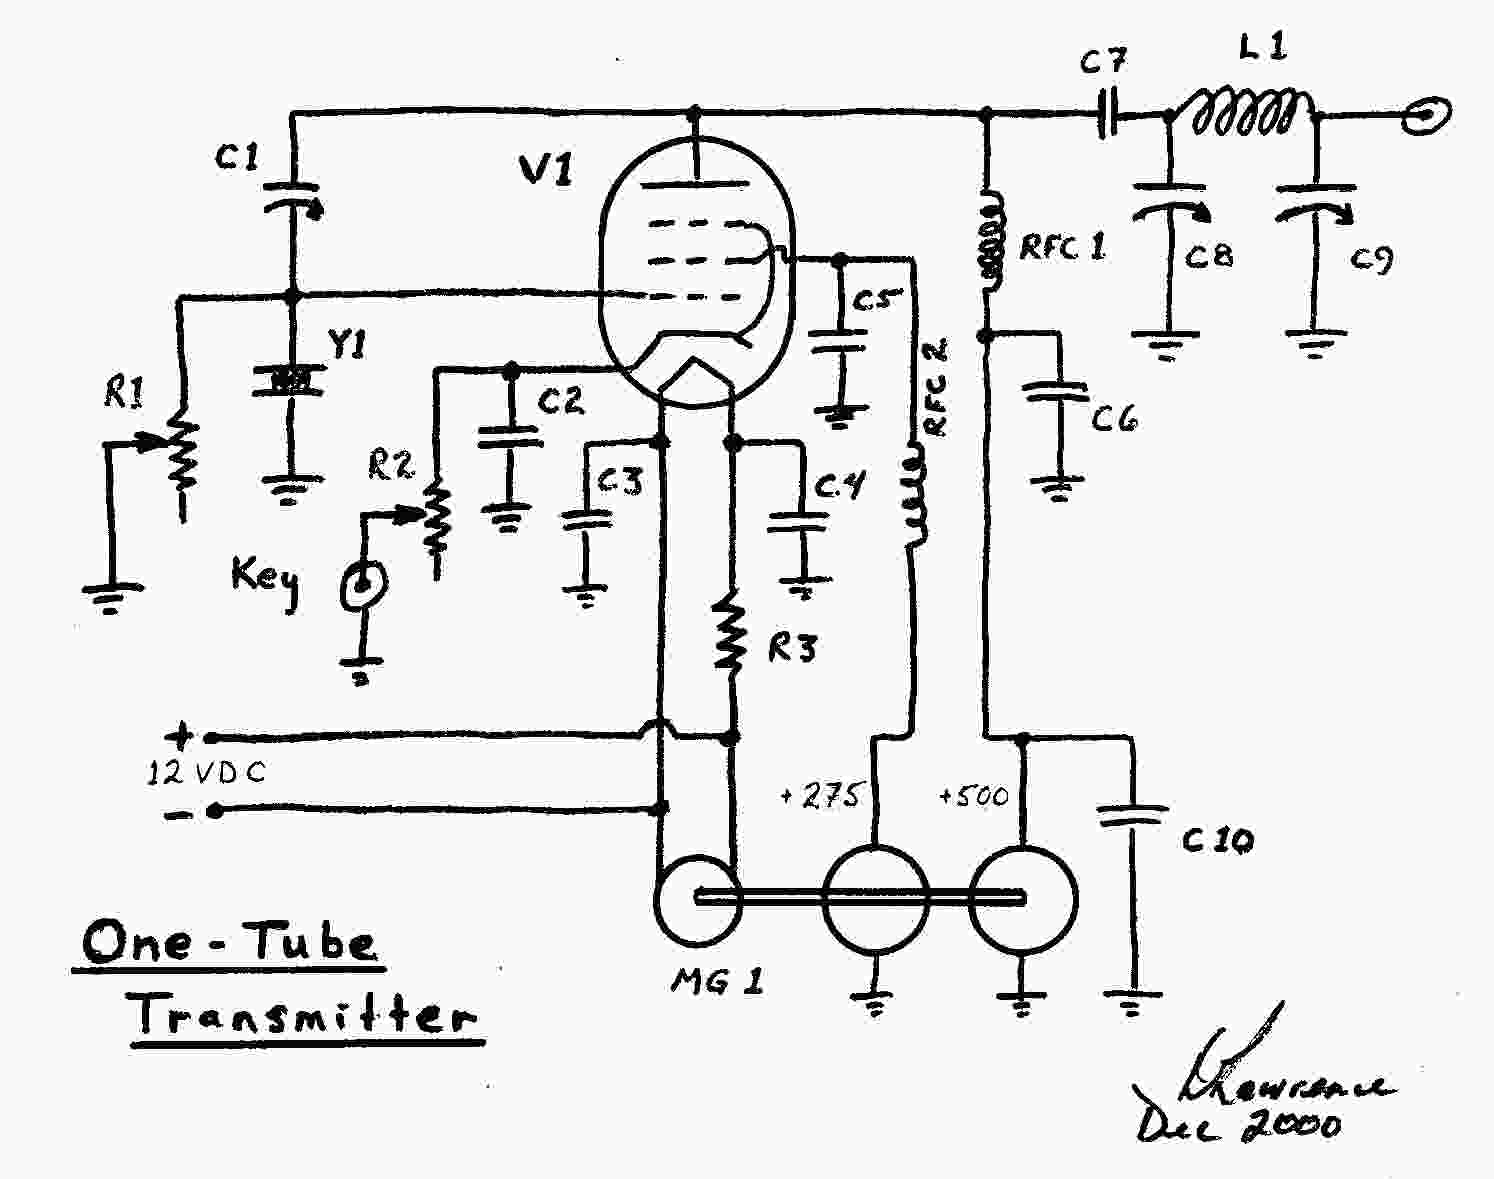 One Tube Radio Schematic Trusted Wiring Diagrams Transistor Observations On The Transmitter